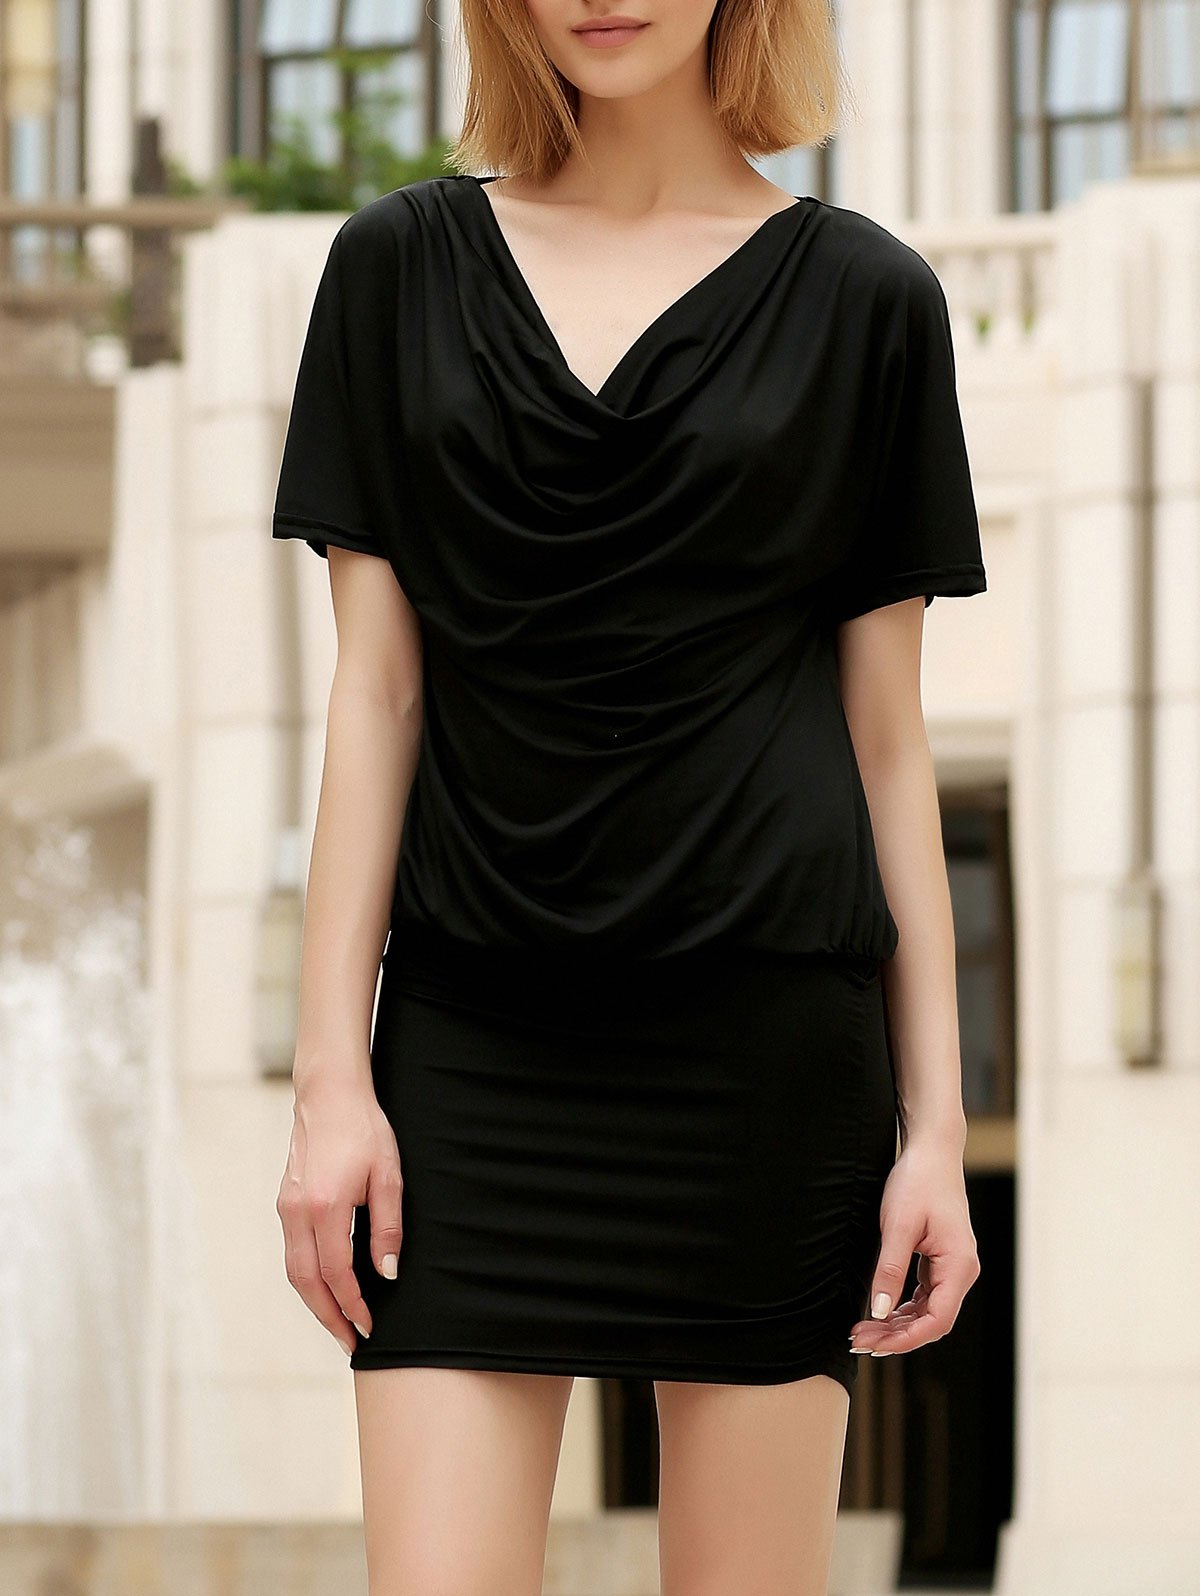 Shops Casual Cowl Neck Short Sleeve Solid Color Bodycon Dress For Women